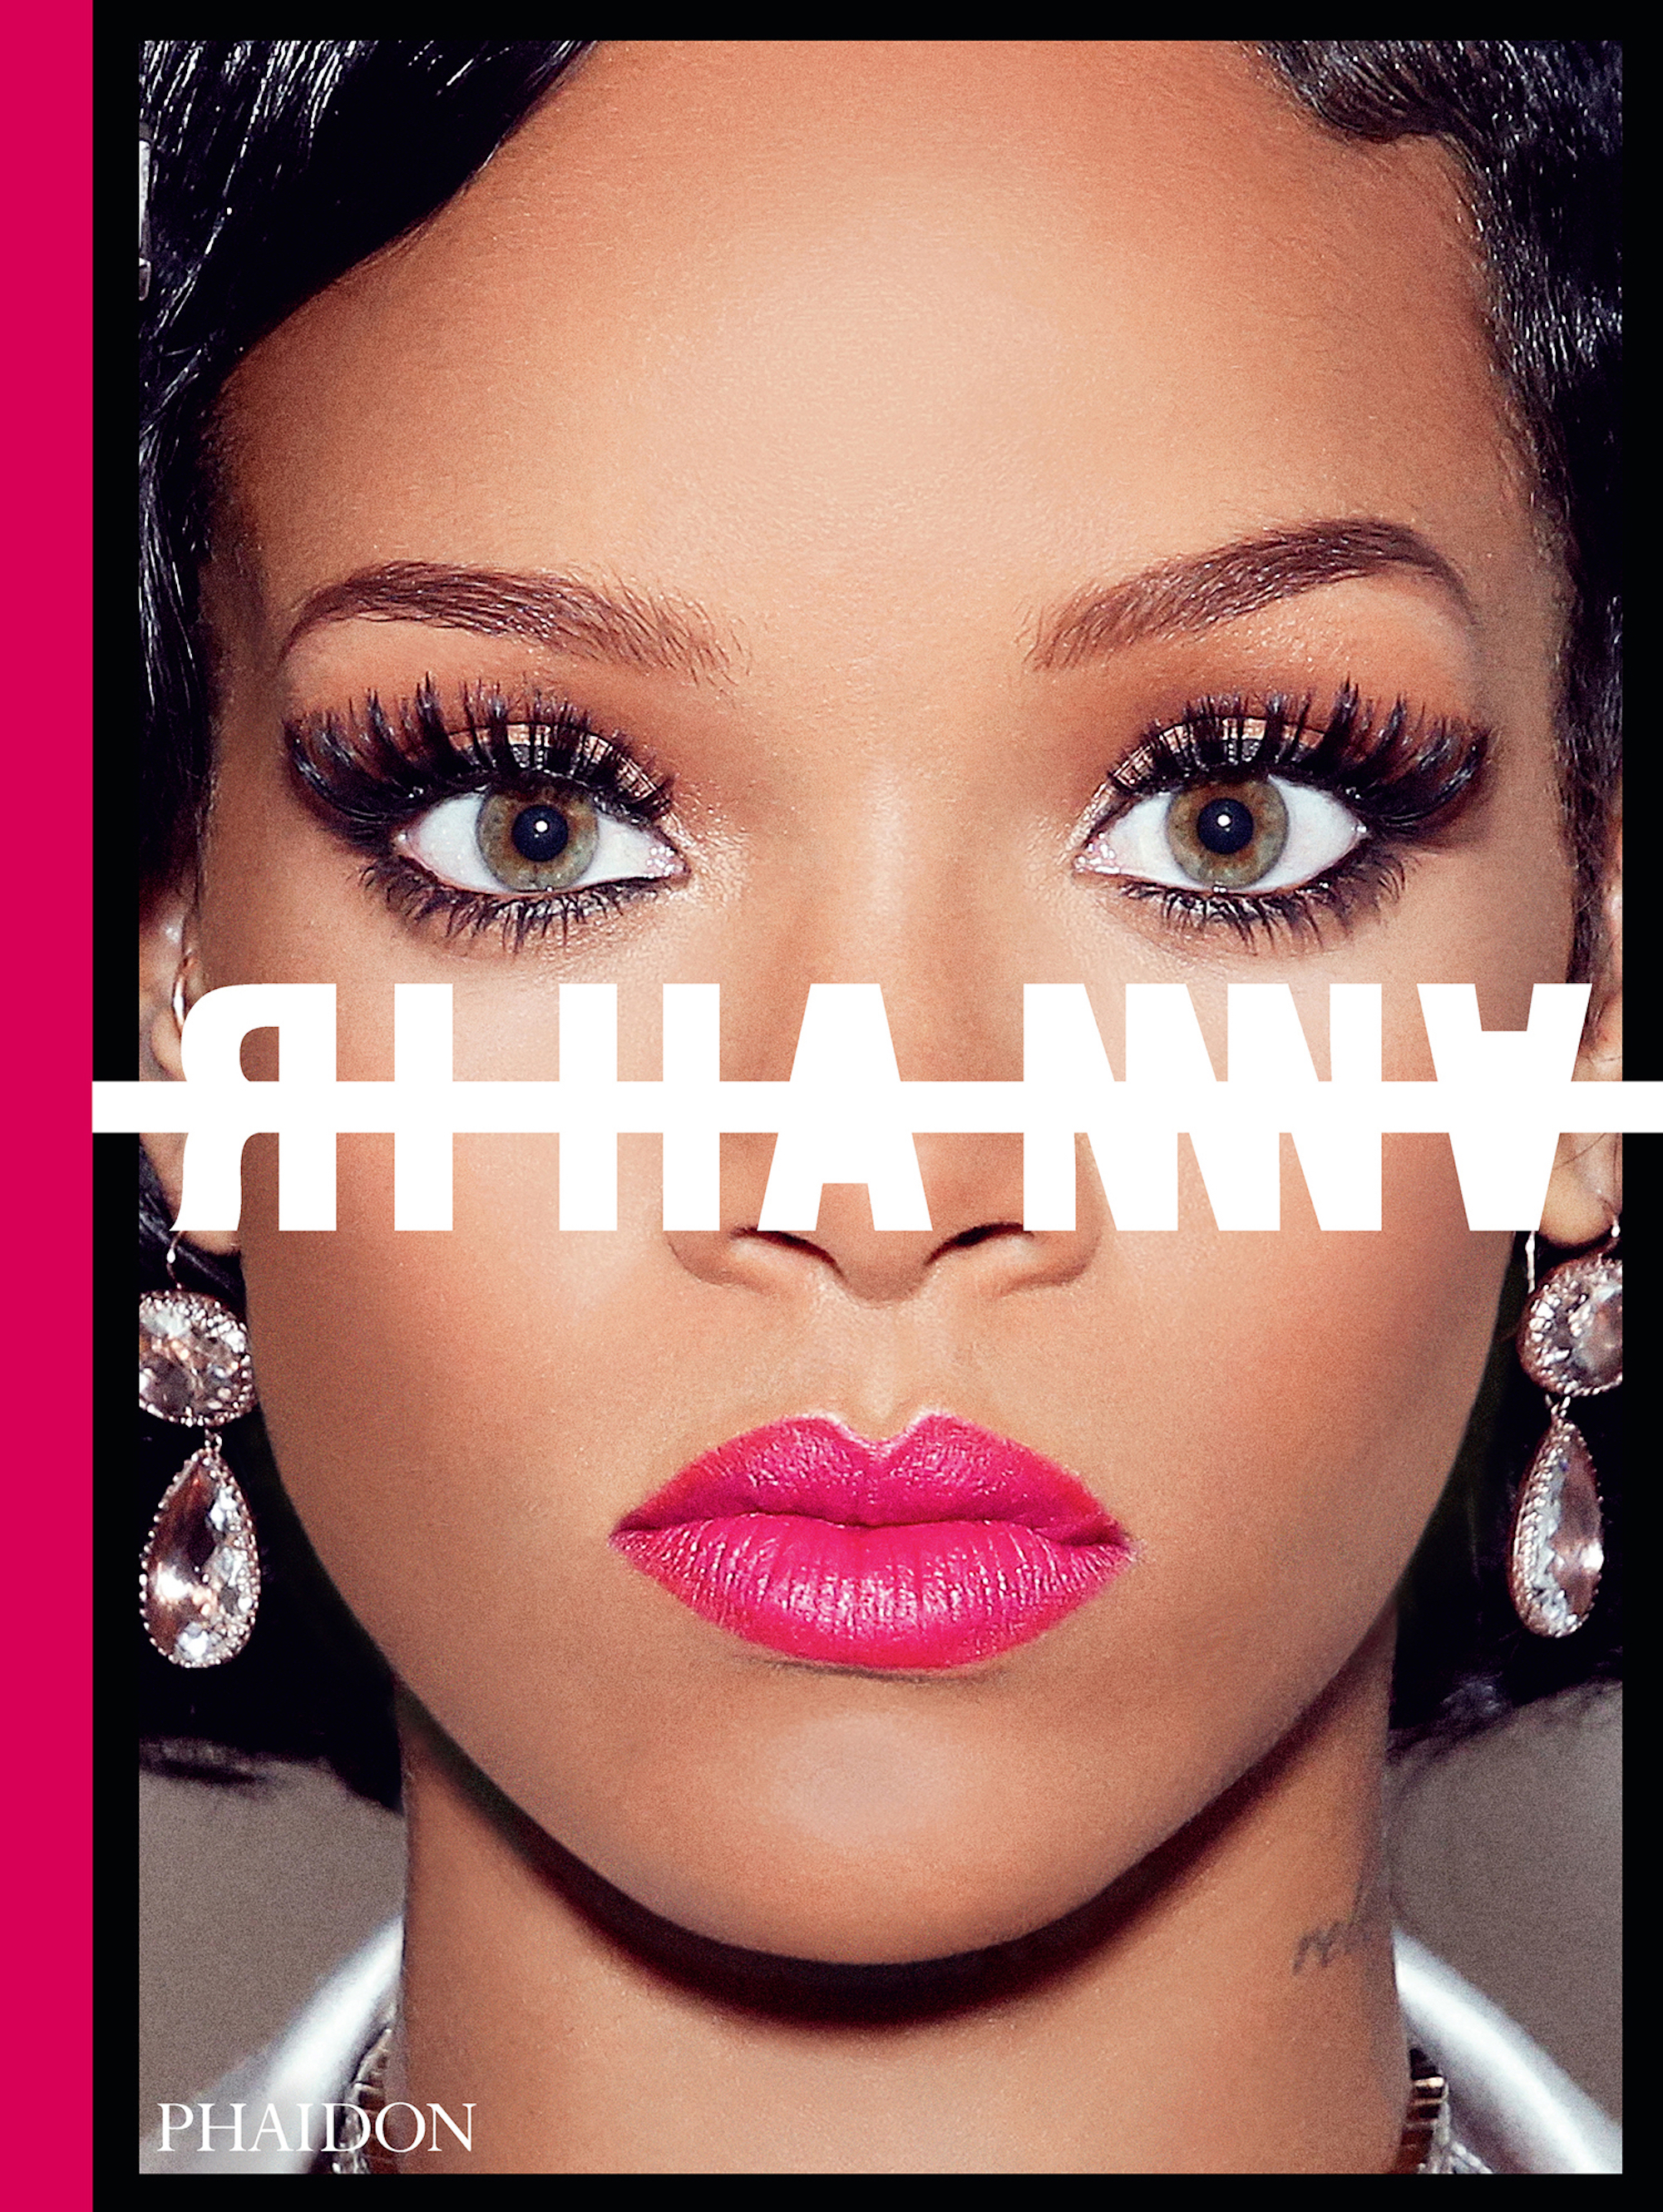 Wonderland Rihanna visual biography